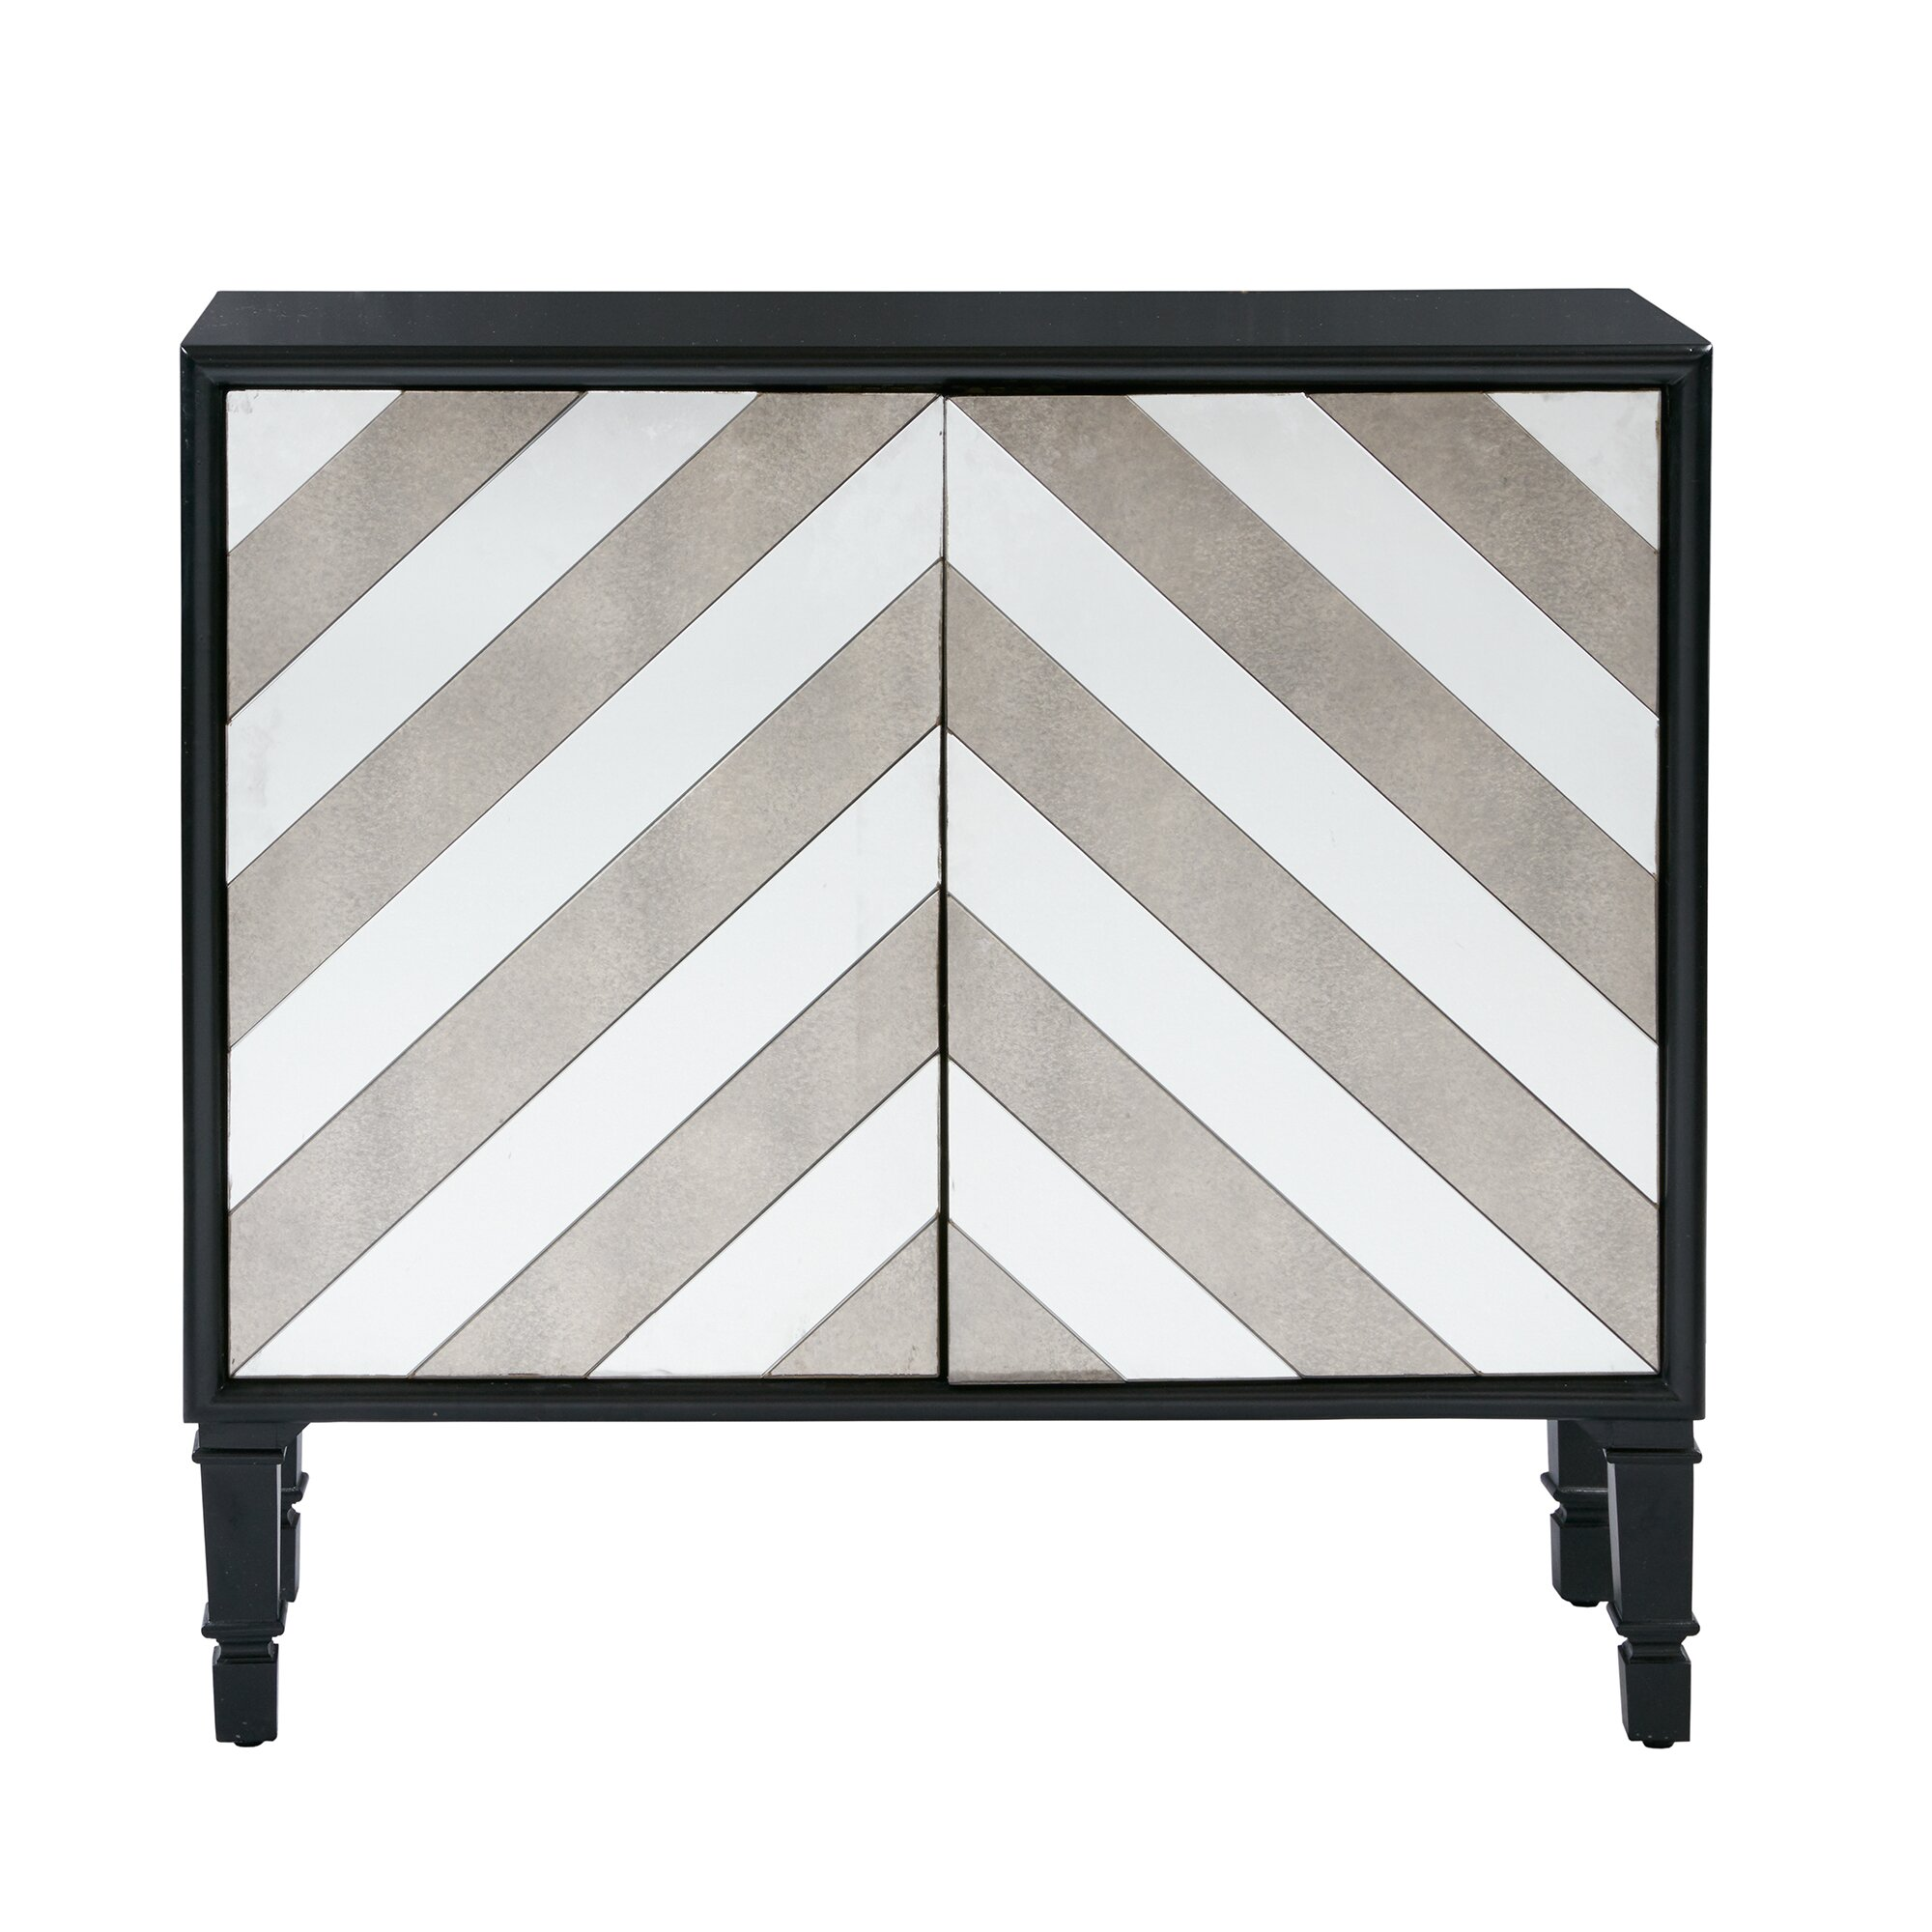 egan chevron mirrored accent chest  reviews  joss  main - mercer egan chevron mirrored accent chest